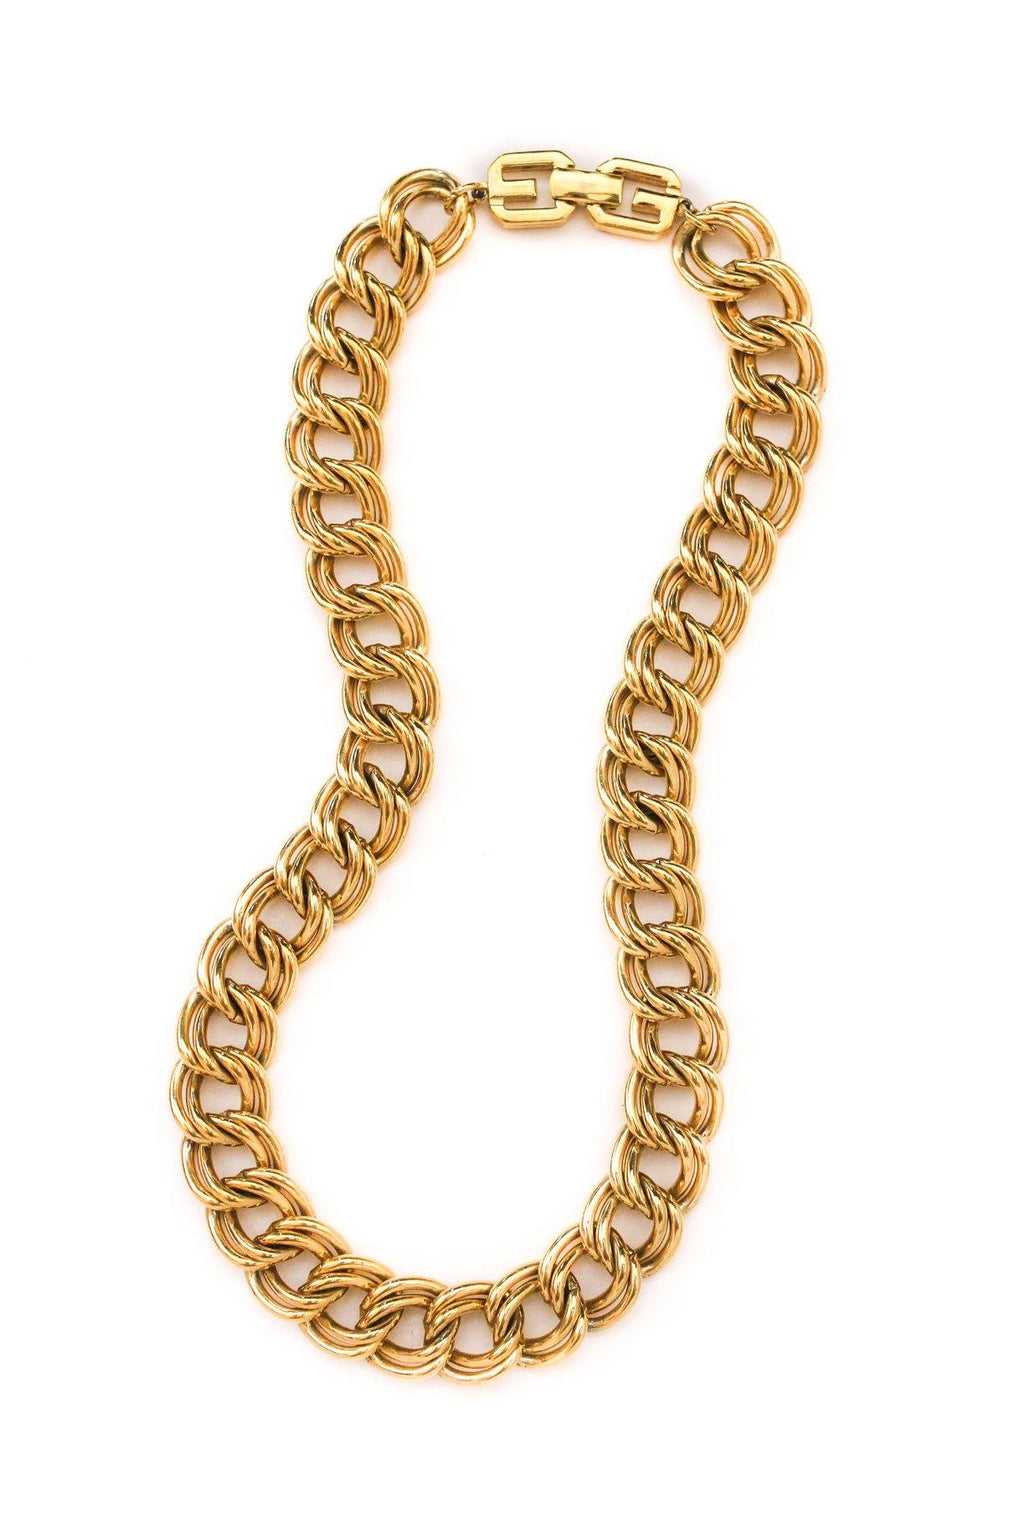 Givenchy Double Link Necklace